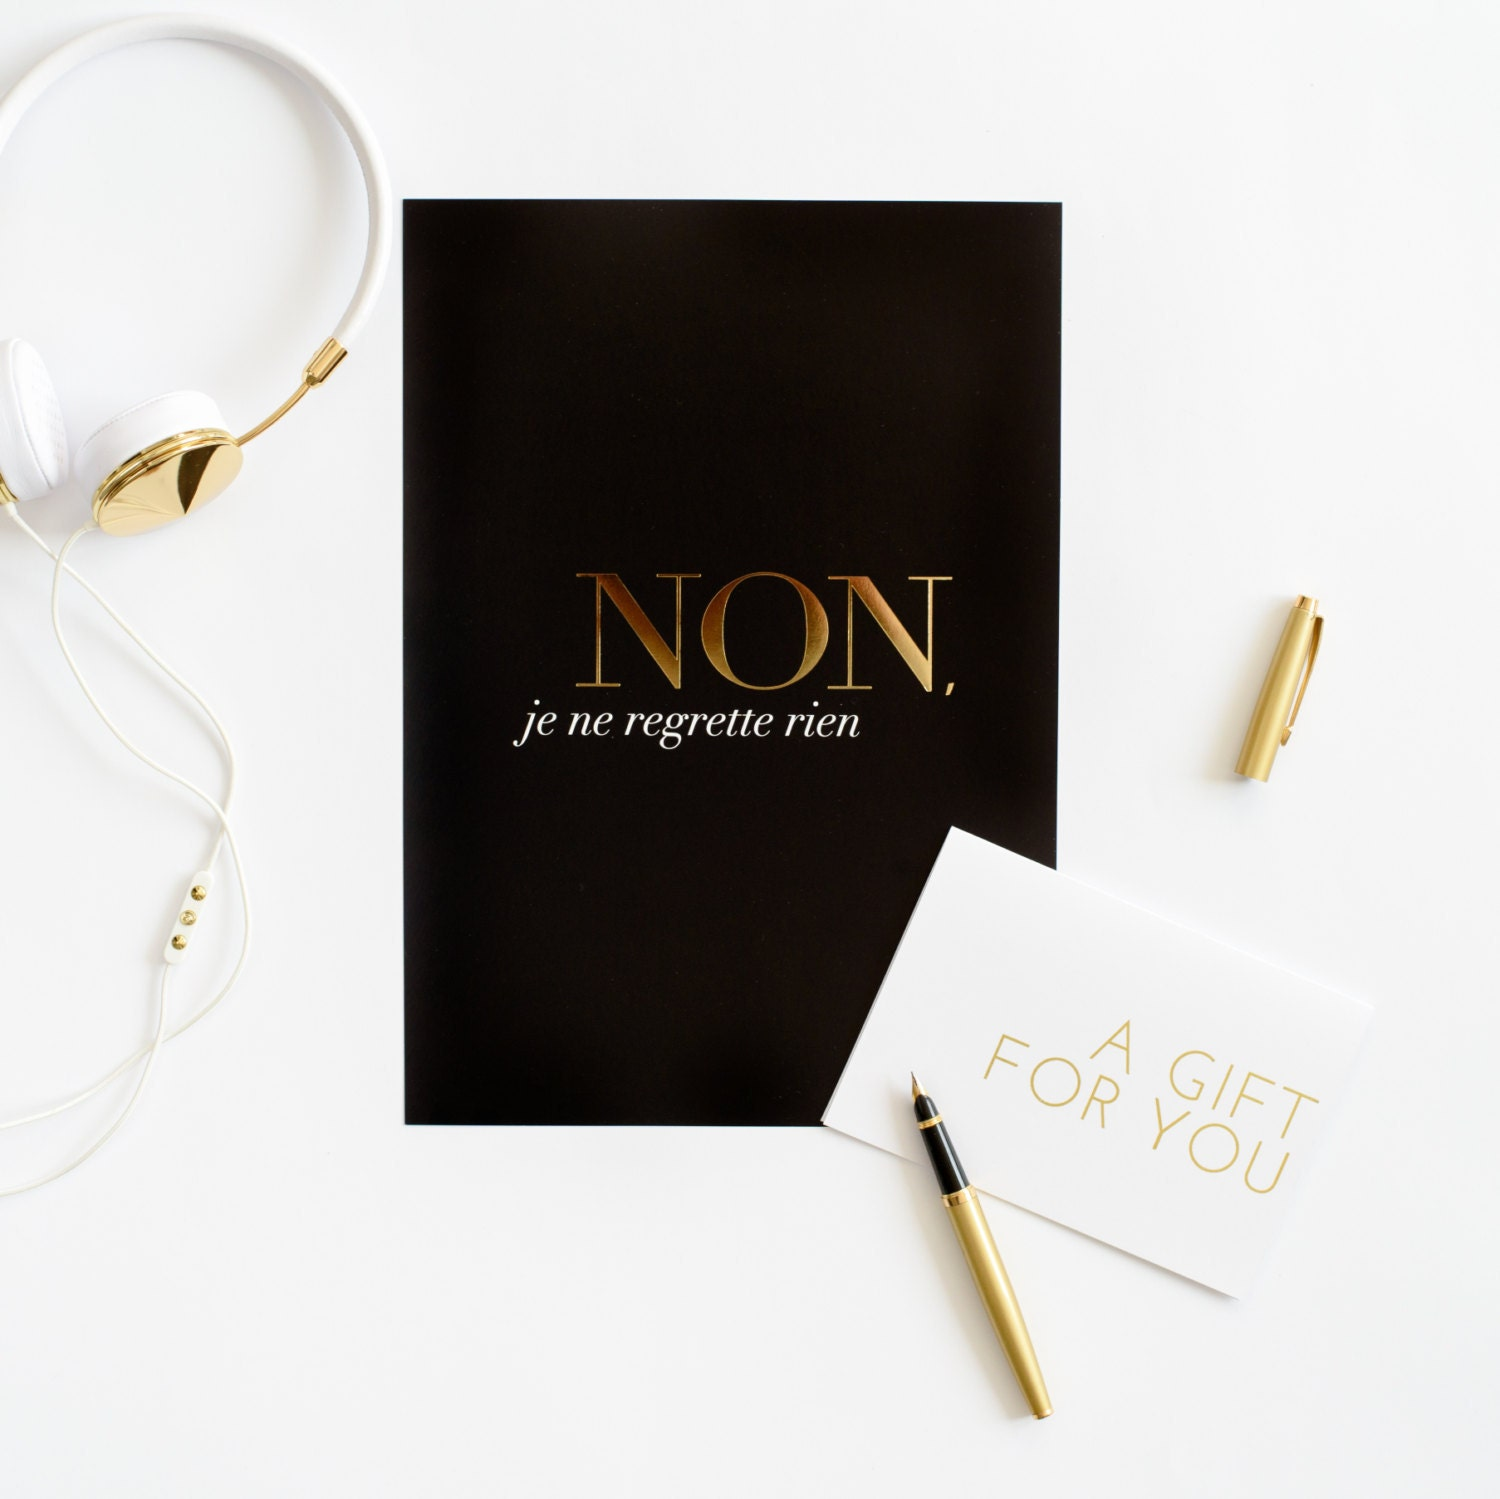 French Tattoo Je Ne Regrette Rien No Regrets: Non Je Ne Regrette Rien Gold Foil Print/ By Sarahandbendrix